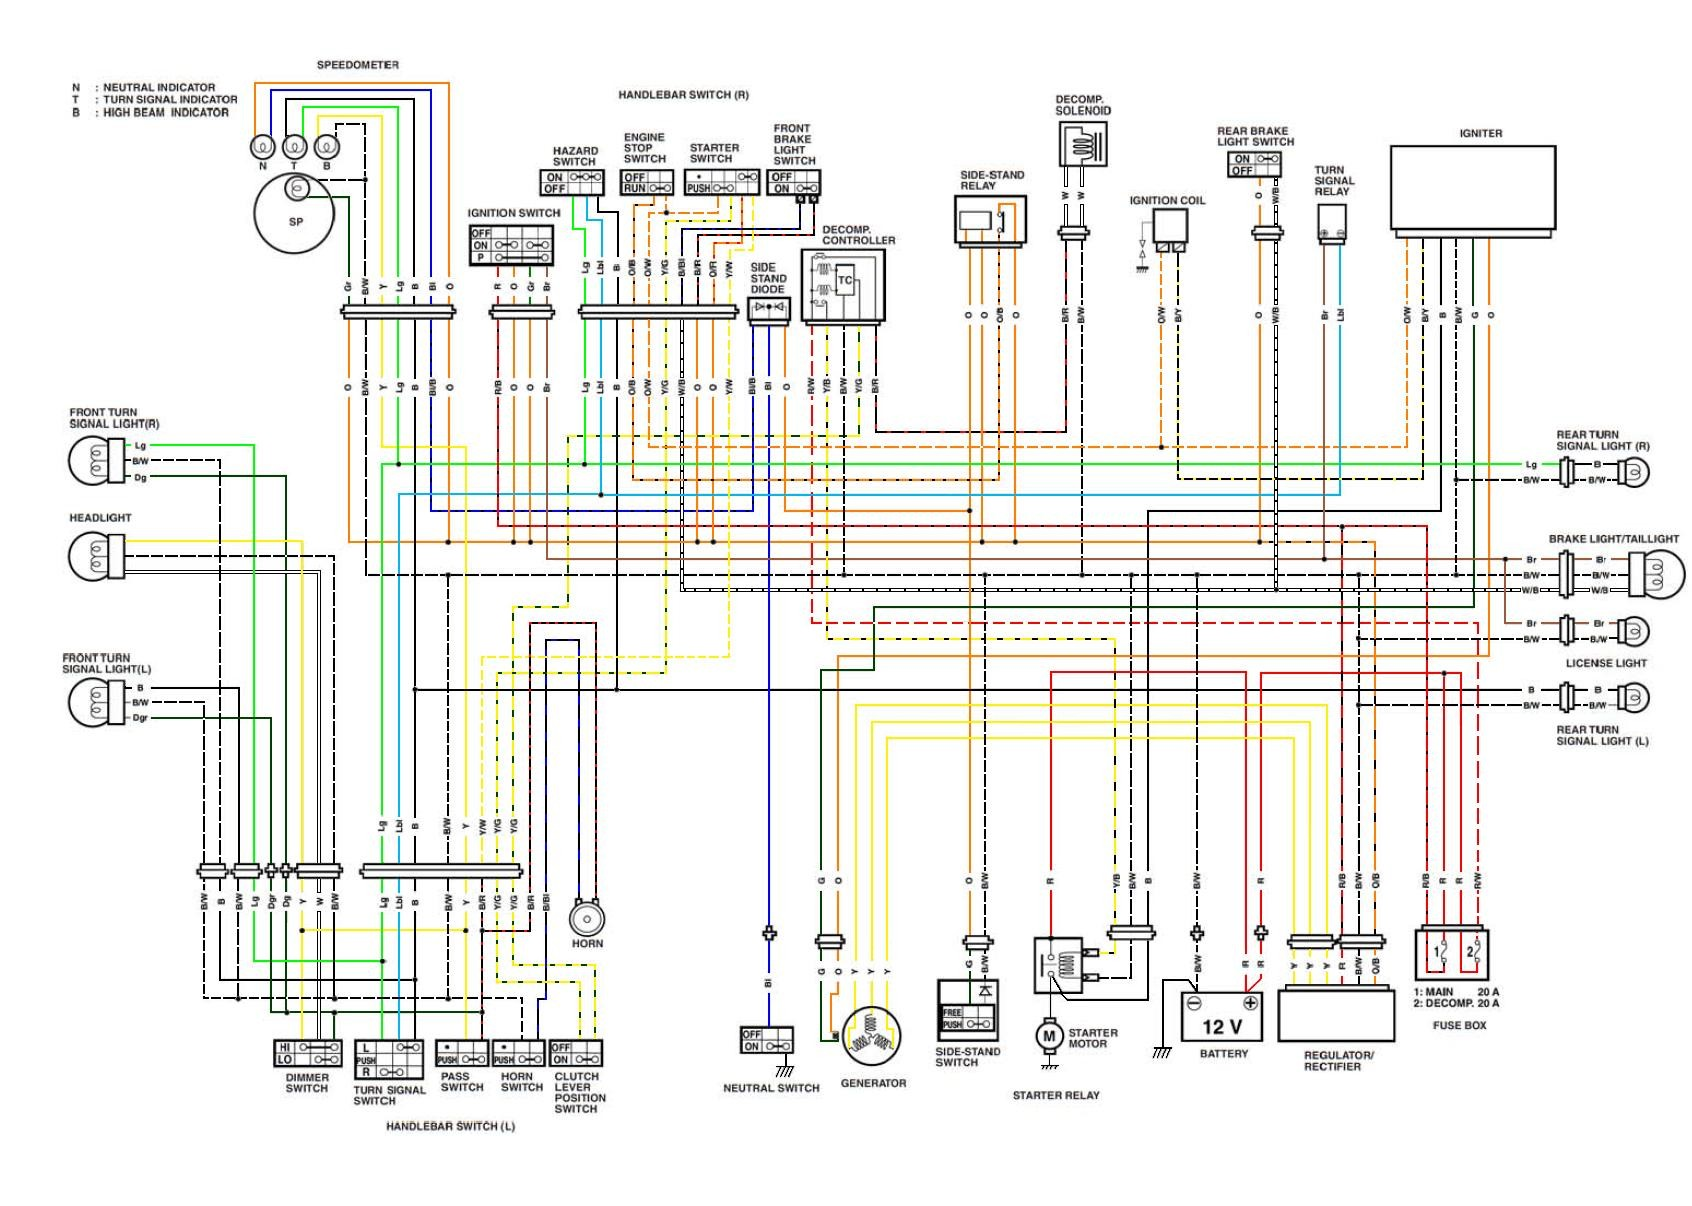 hight resolution of 1993 harley sportster wiring diagram electrical wiring diagrams 1997 wide glide 2001 dyna wide glide wiring